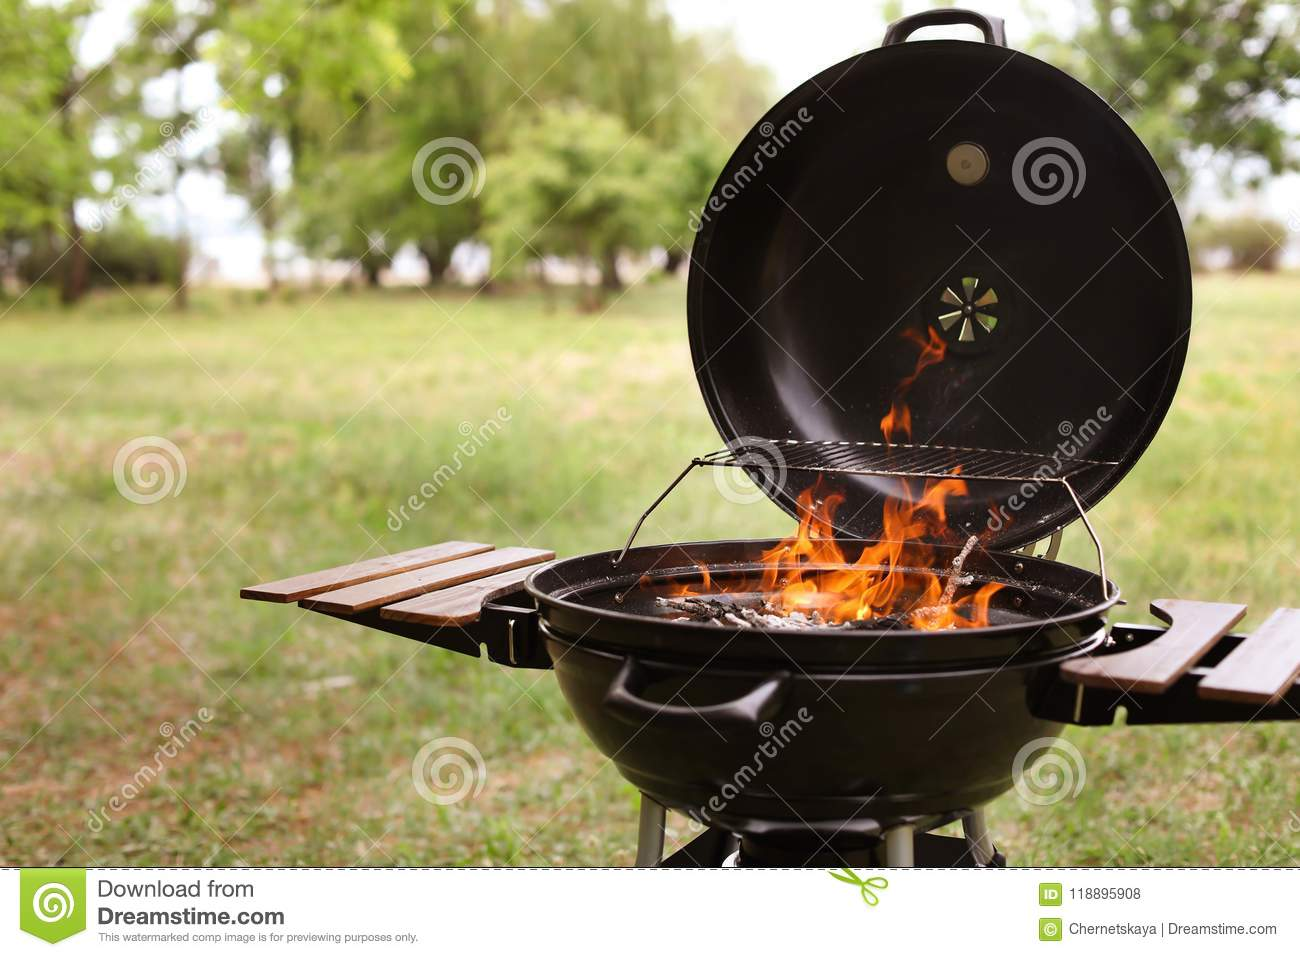 Modern Barbecue Grill With Fire Flames Stock Photo - Image